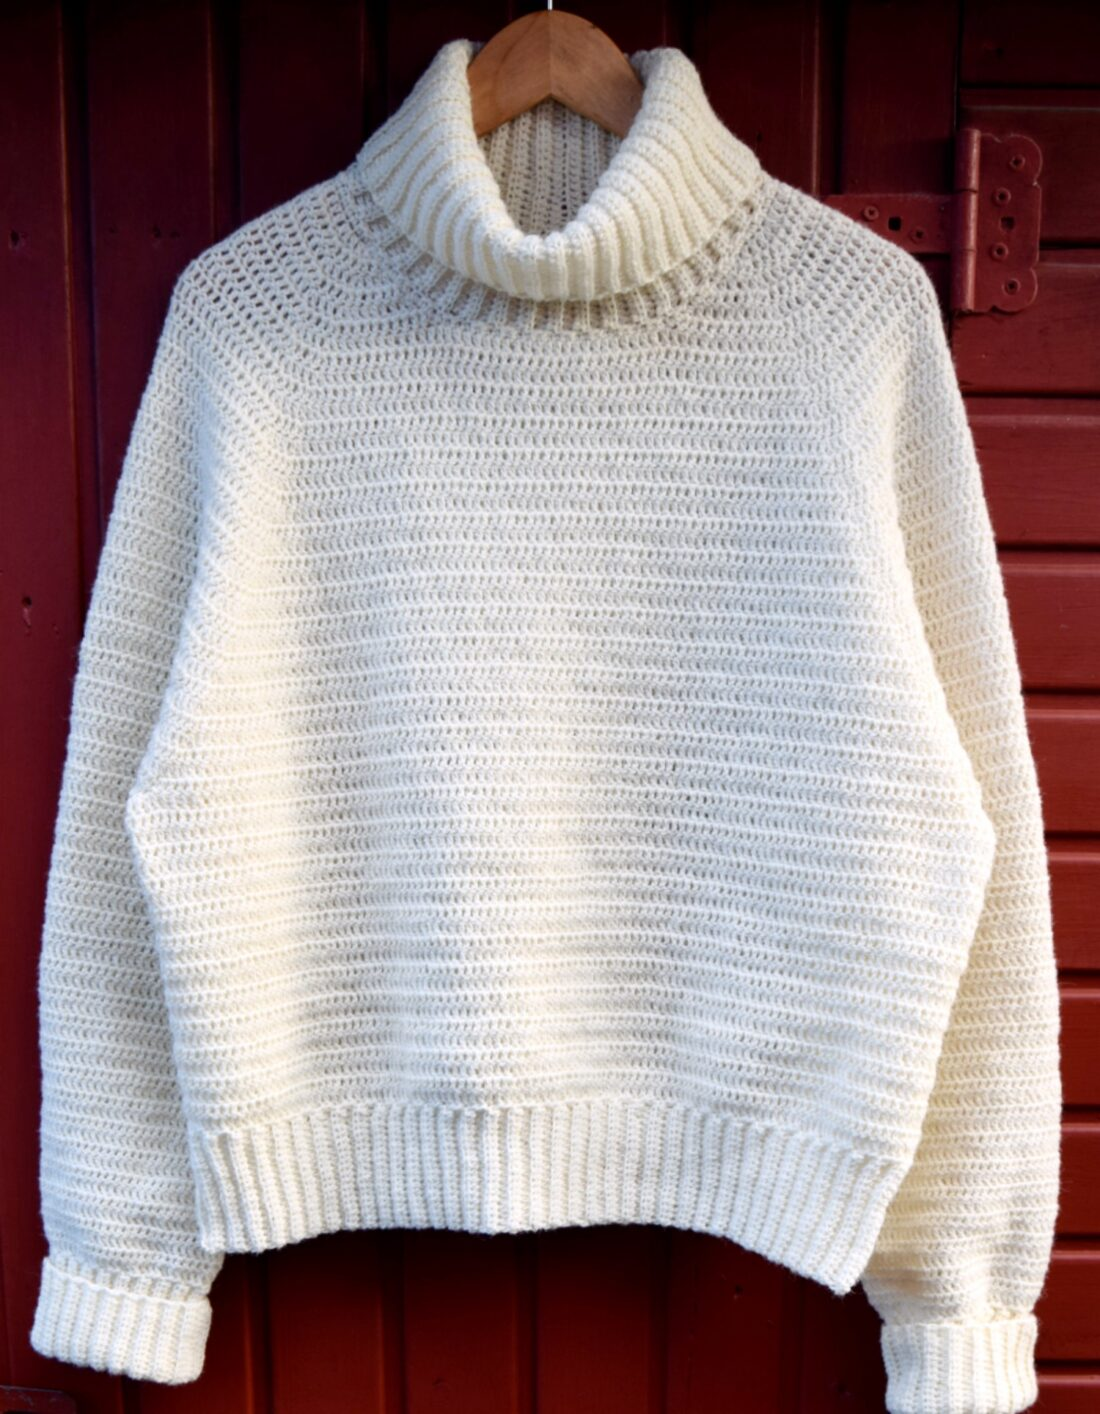 Hæklet sweater, Frida basis sweater